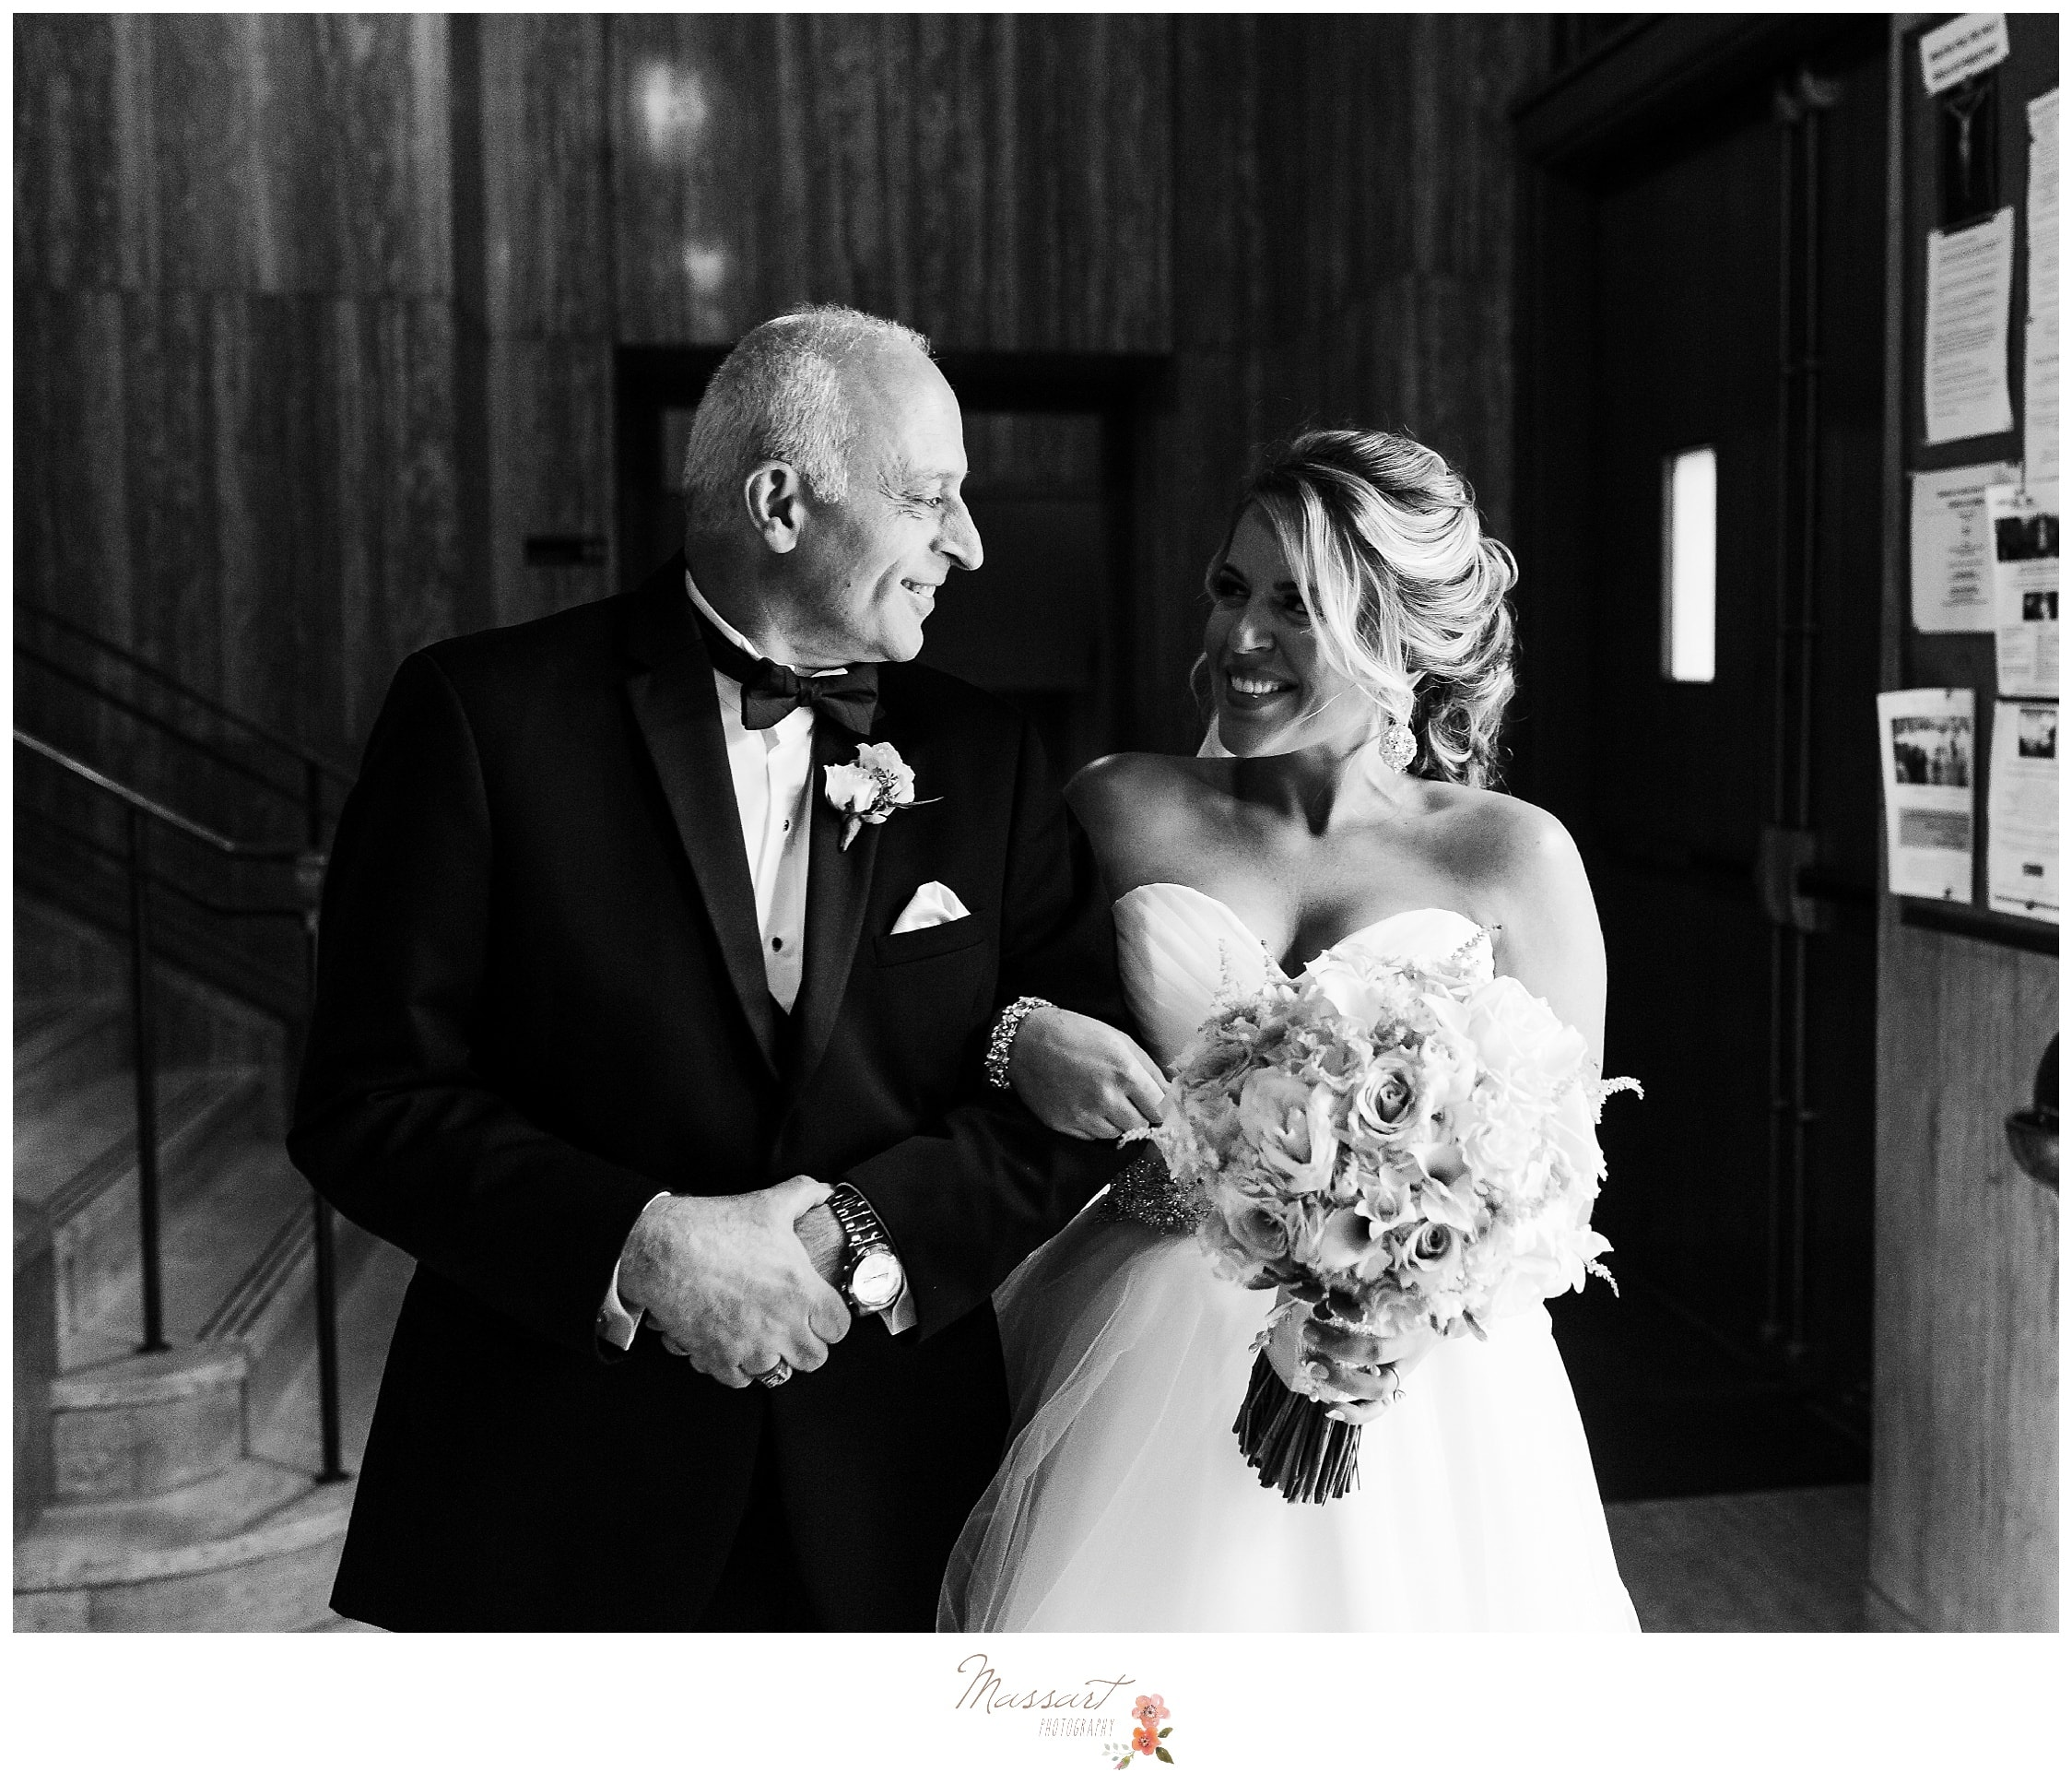 Black and white portraits of the bride and her father getting ready to walk down the aisle at the Providence wedding photographed by Massart Photography RI